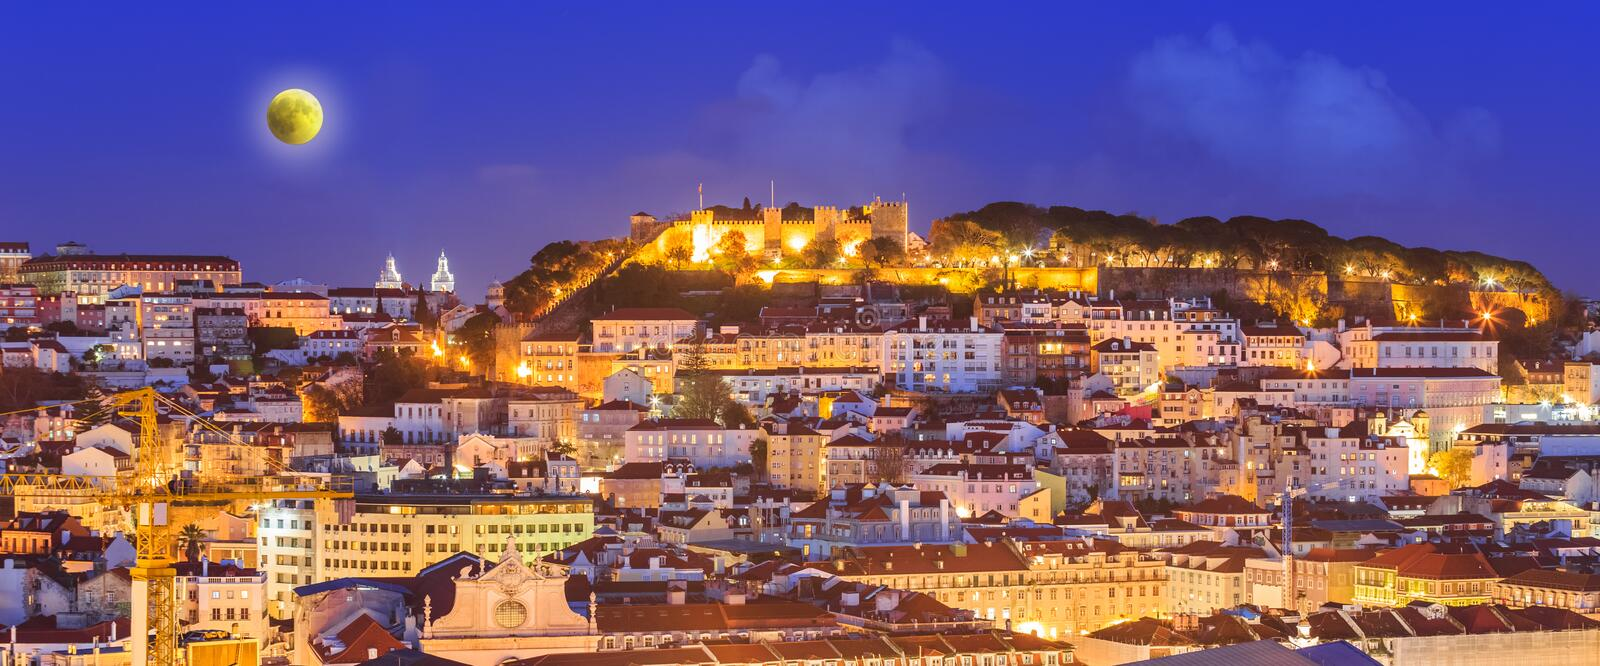 Cityscape of Lisbon at night. With full moon on the sky and illuminated architecture, in Portugal royalty free stock photo